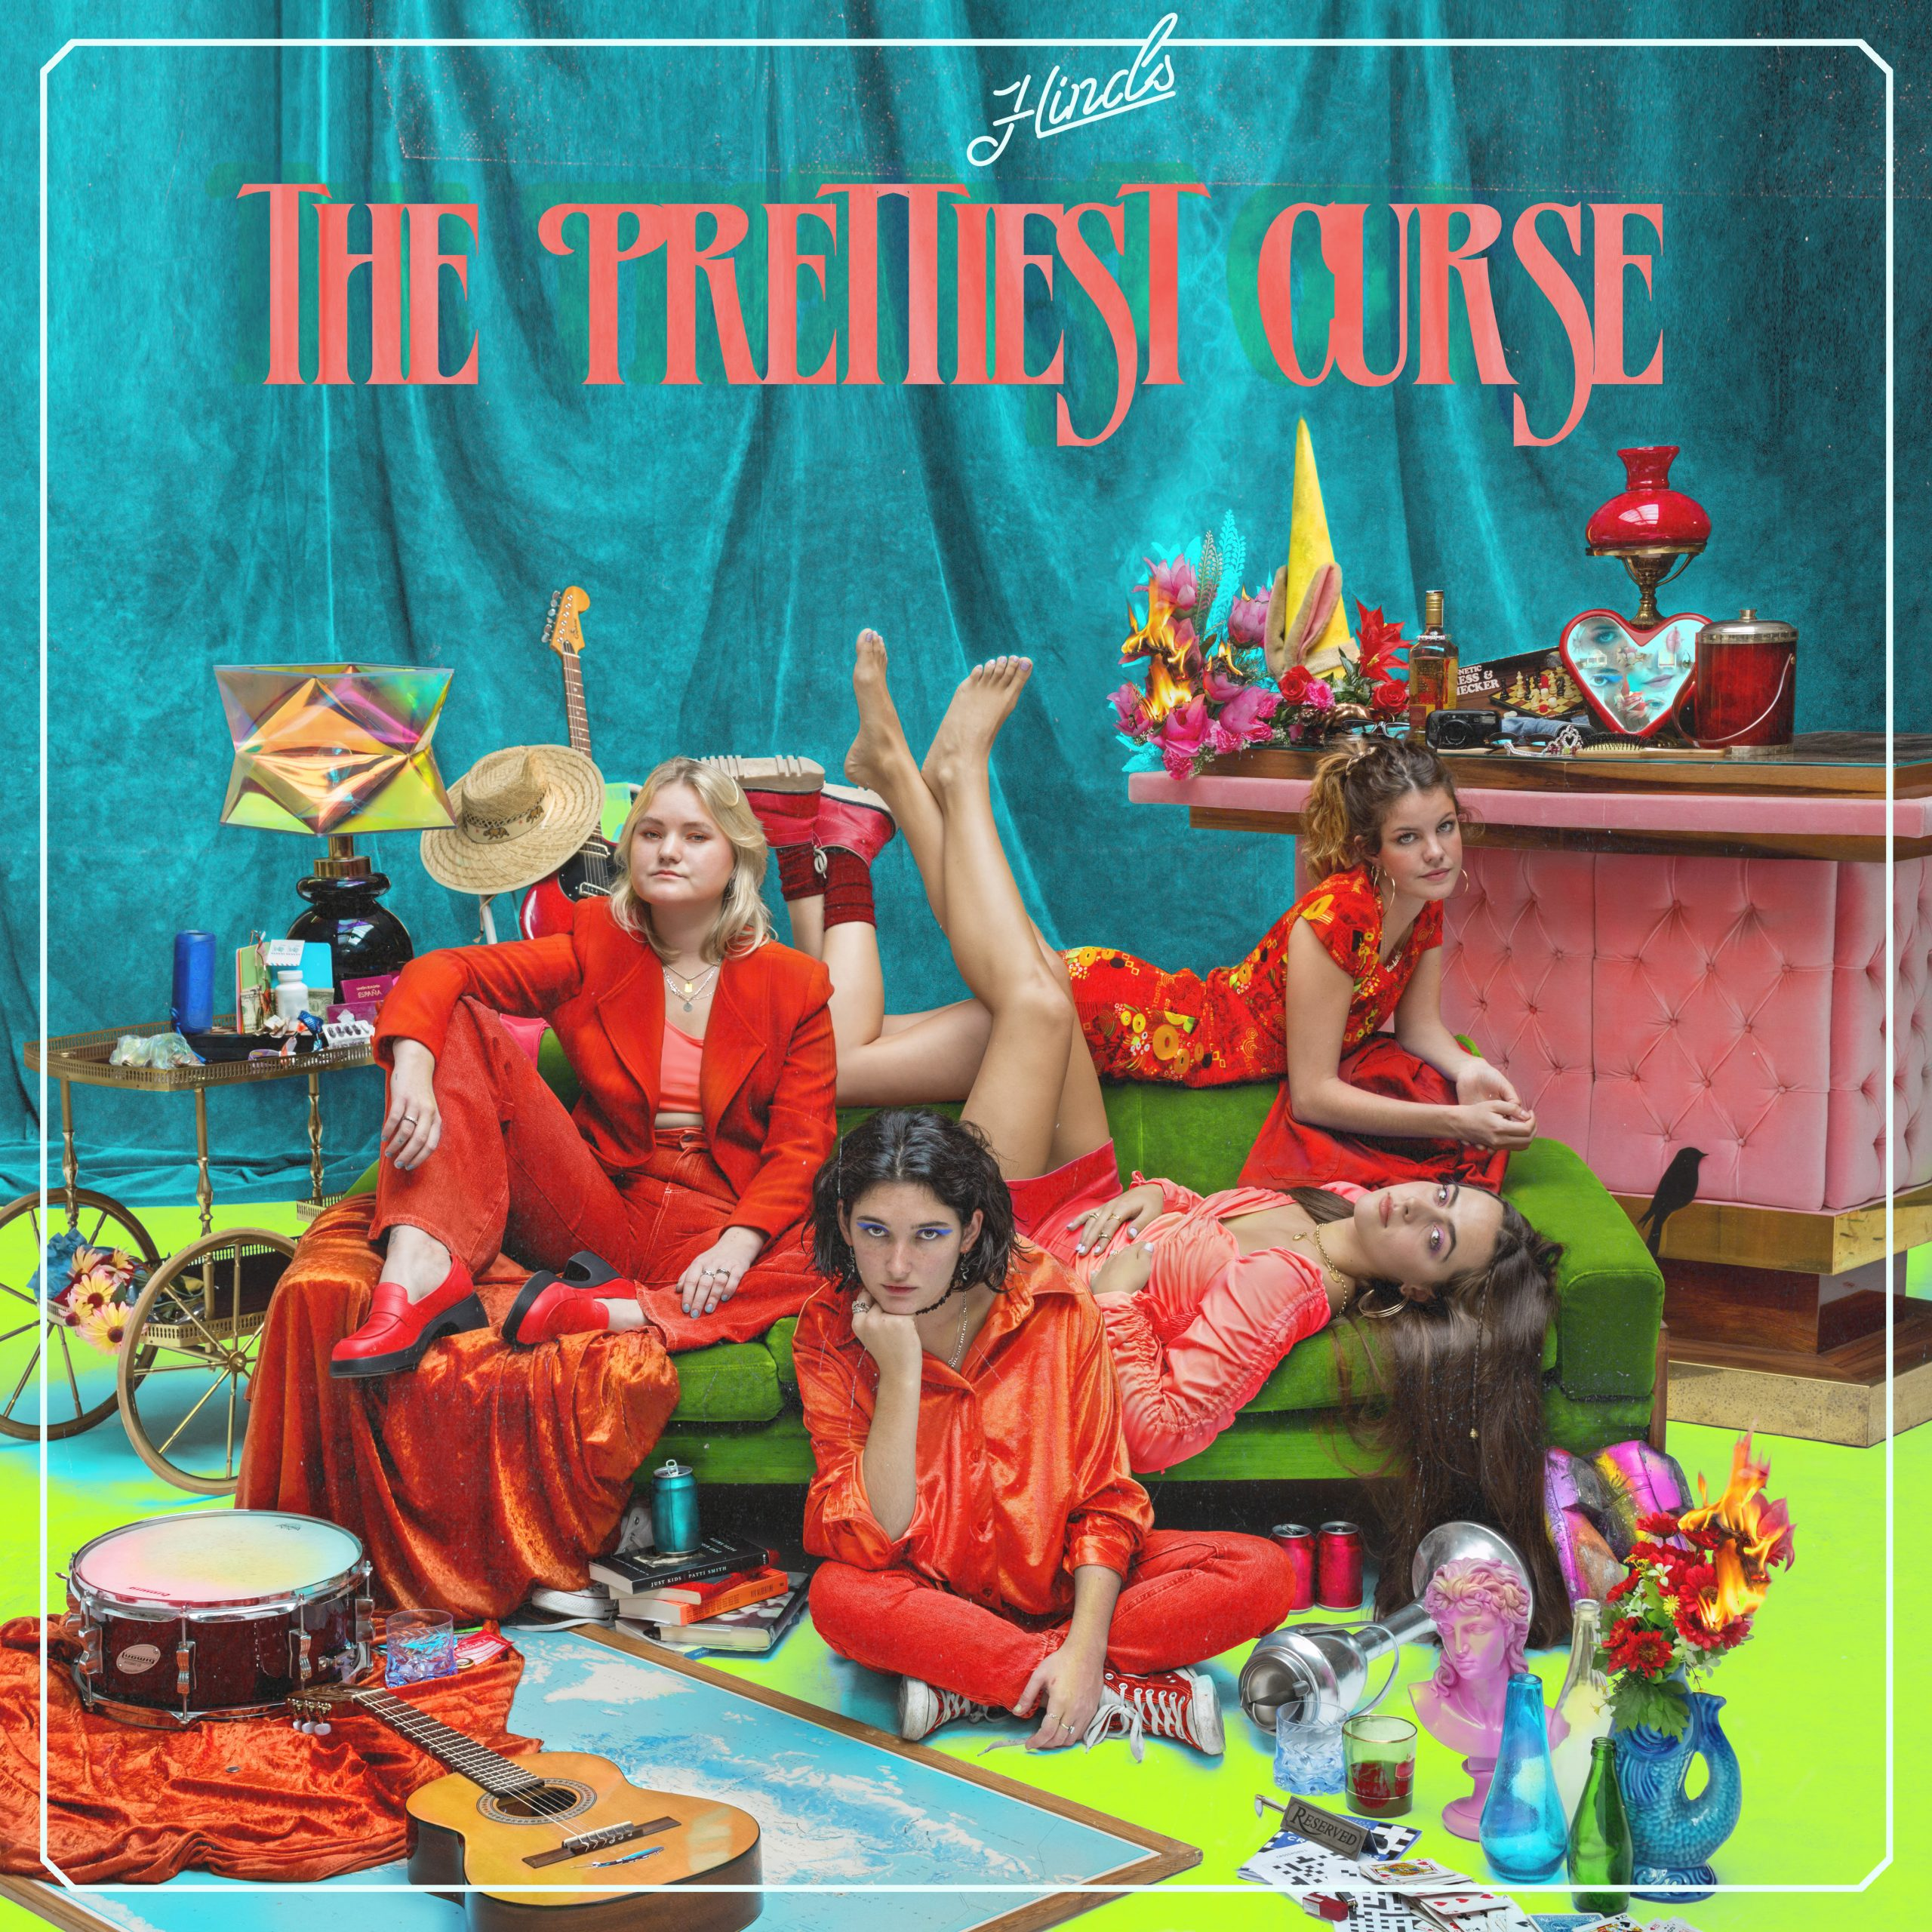 Album artwork for 'The Prettiest Curse' by Hinds